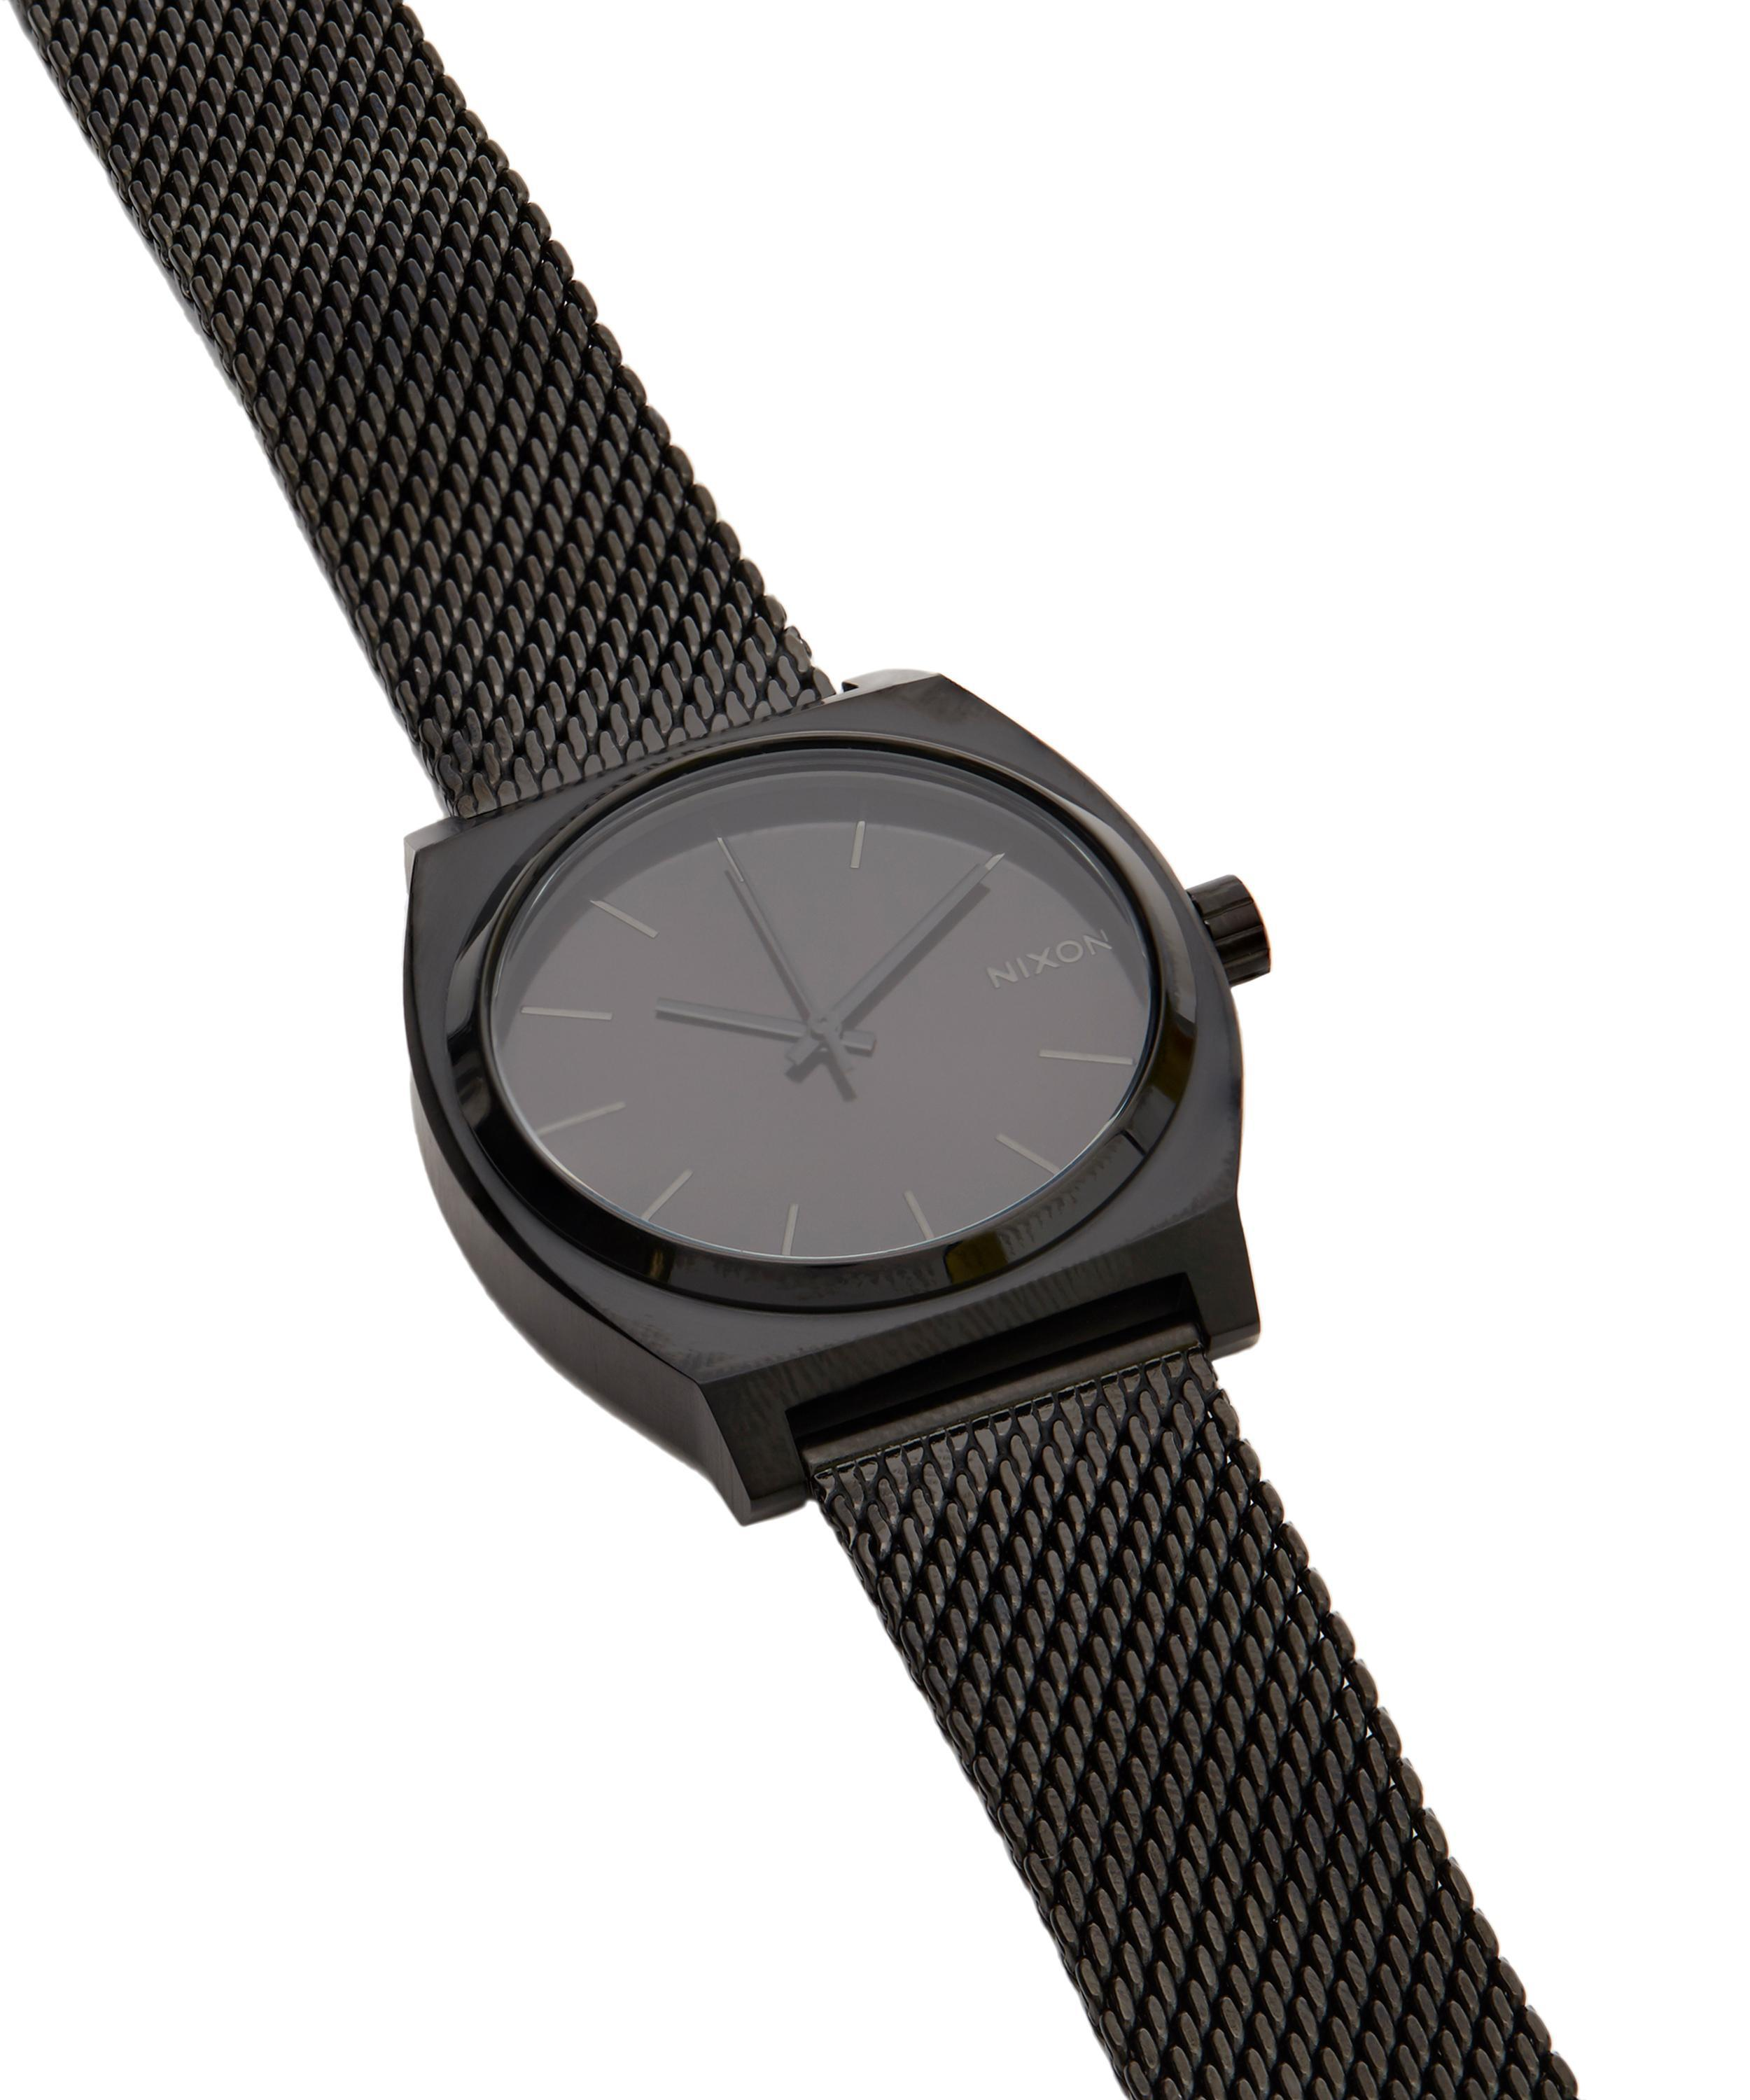 Lyst - Nixon Time Teller Milanese Watch in Black ee0886d71ef